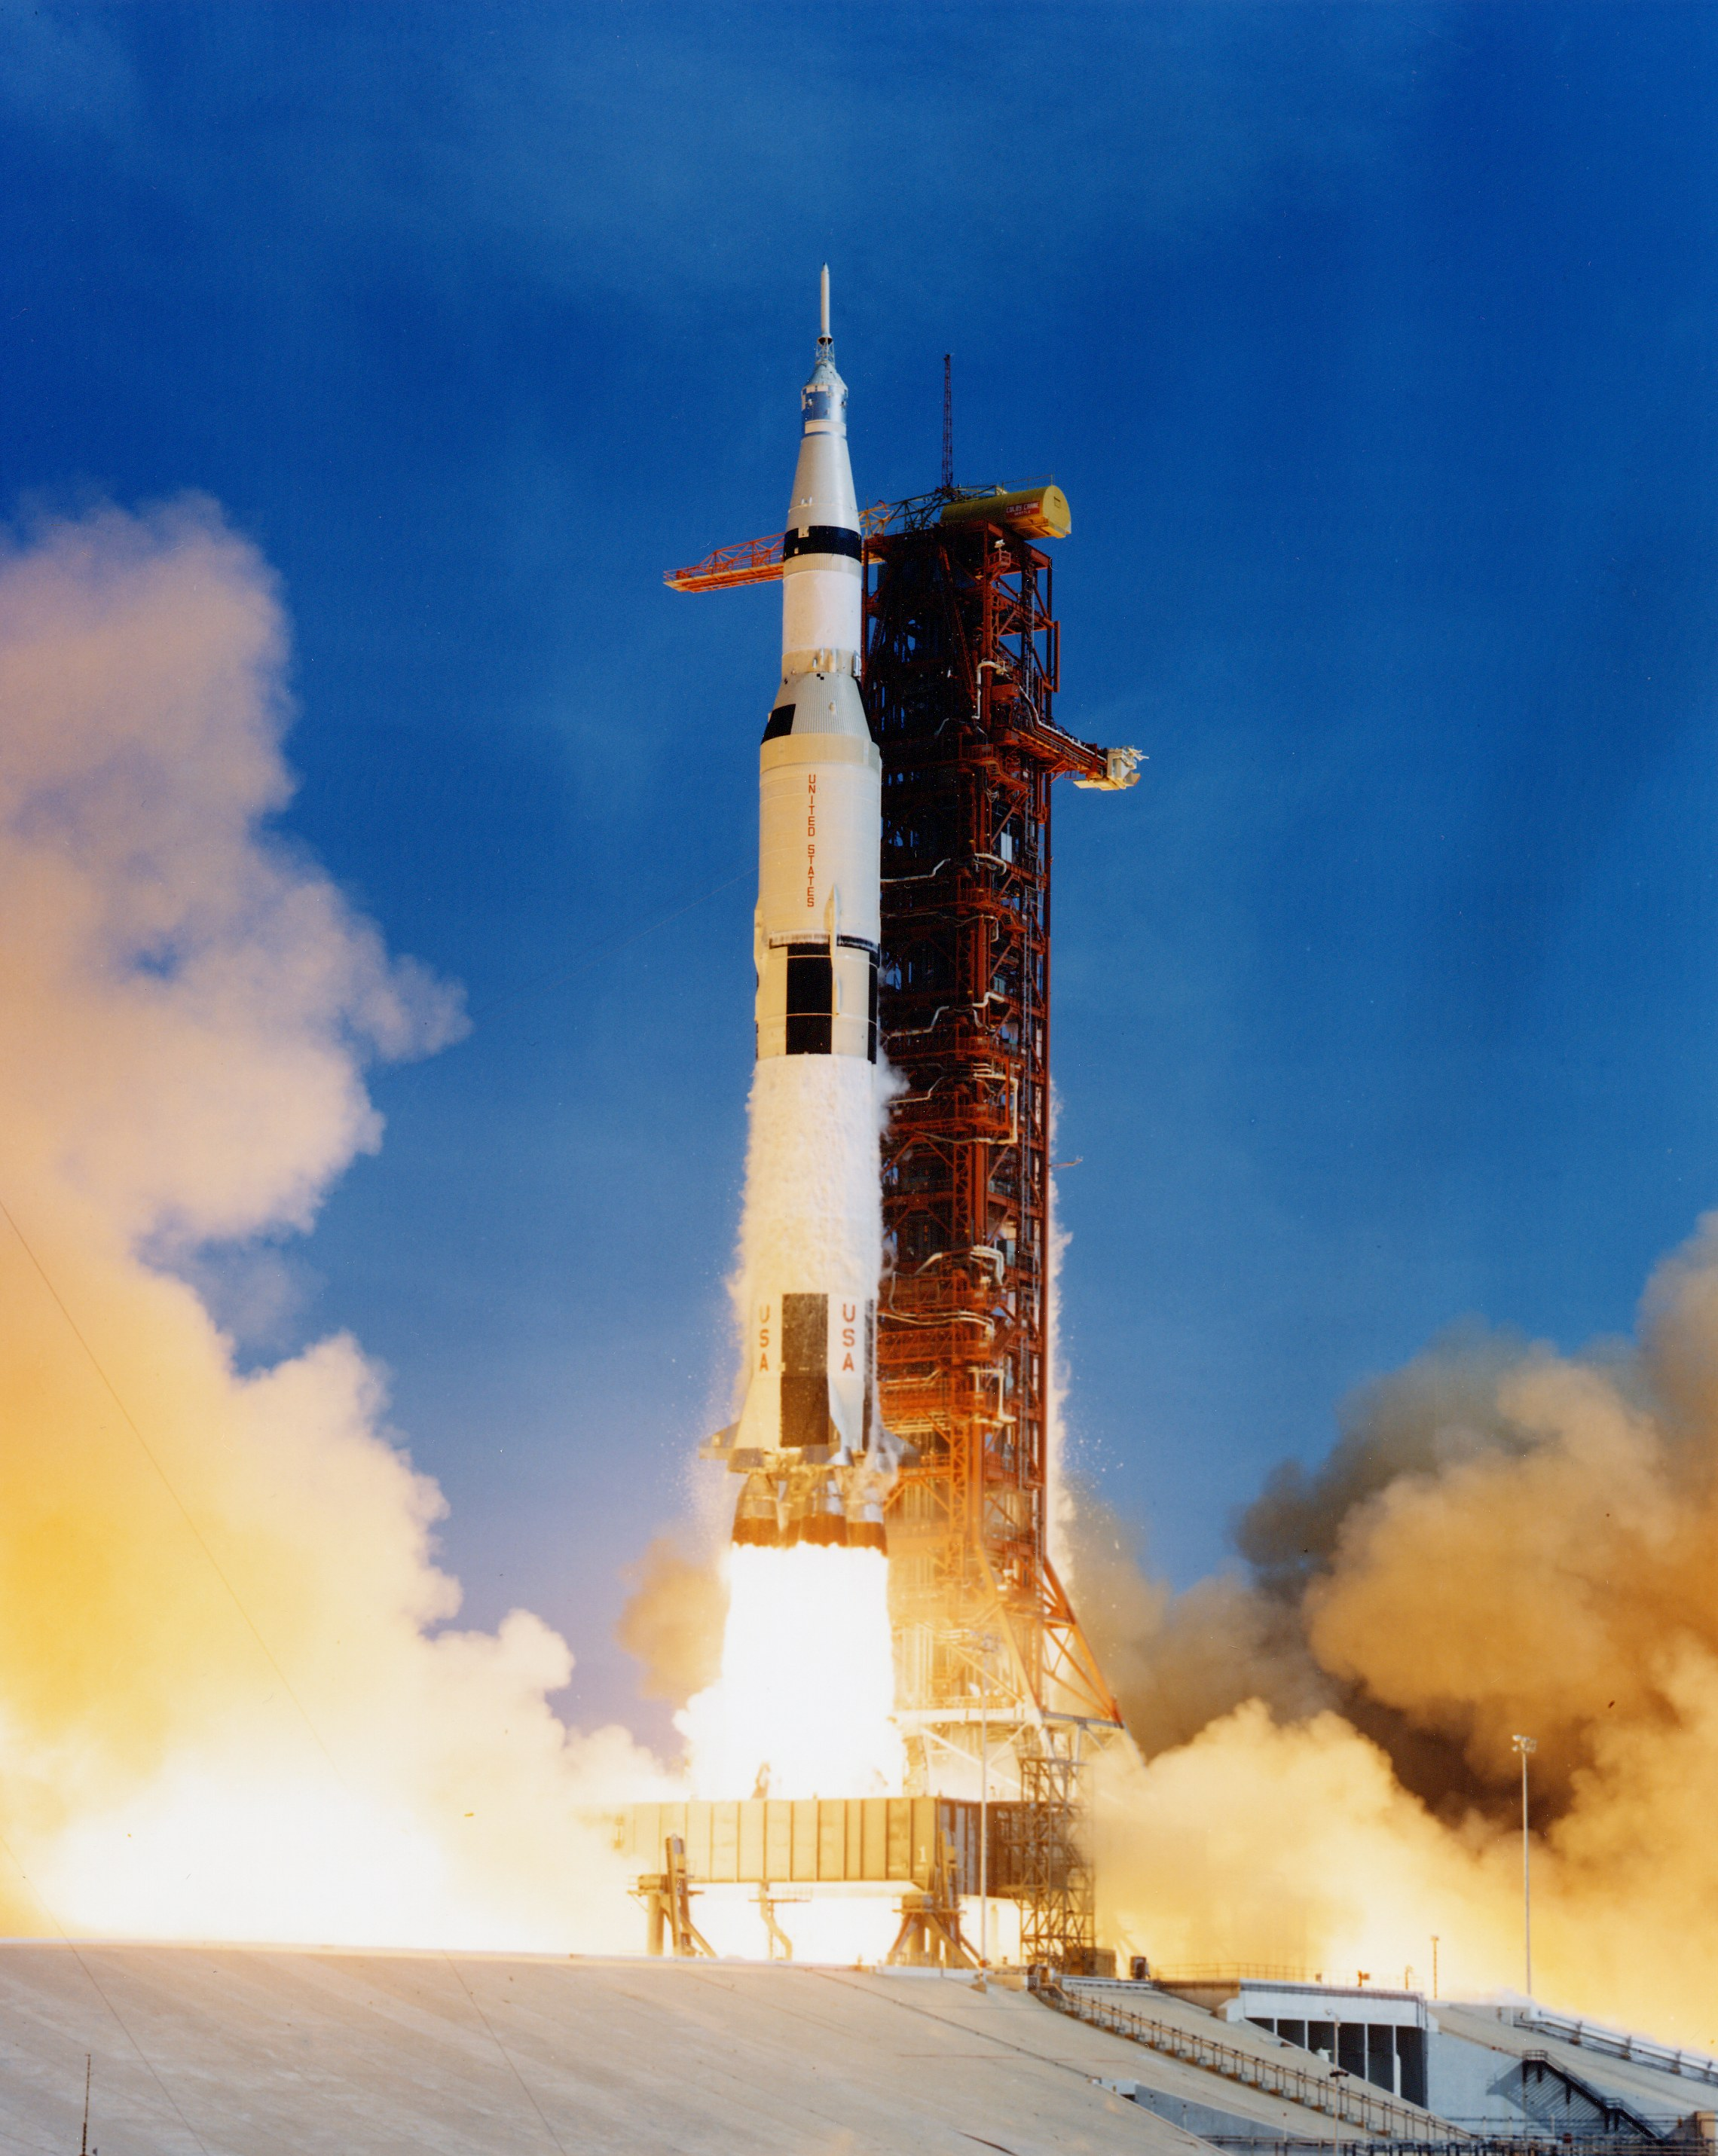 File:Apollo 11 Saturn V lifting off on July 16, 1969.jpg ...